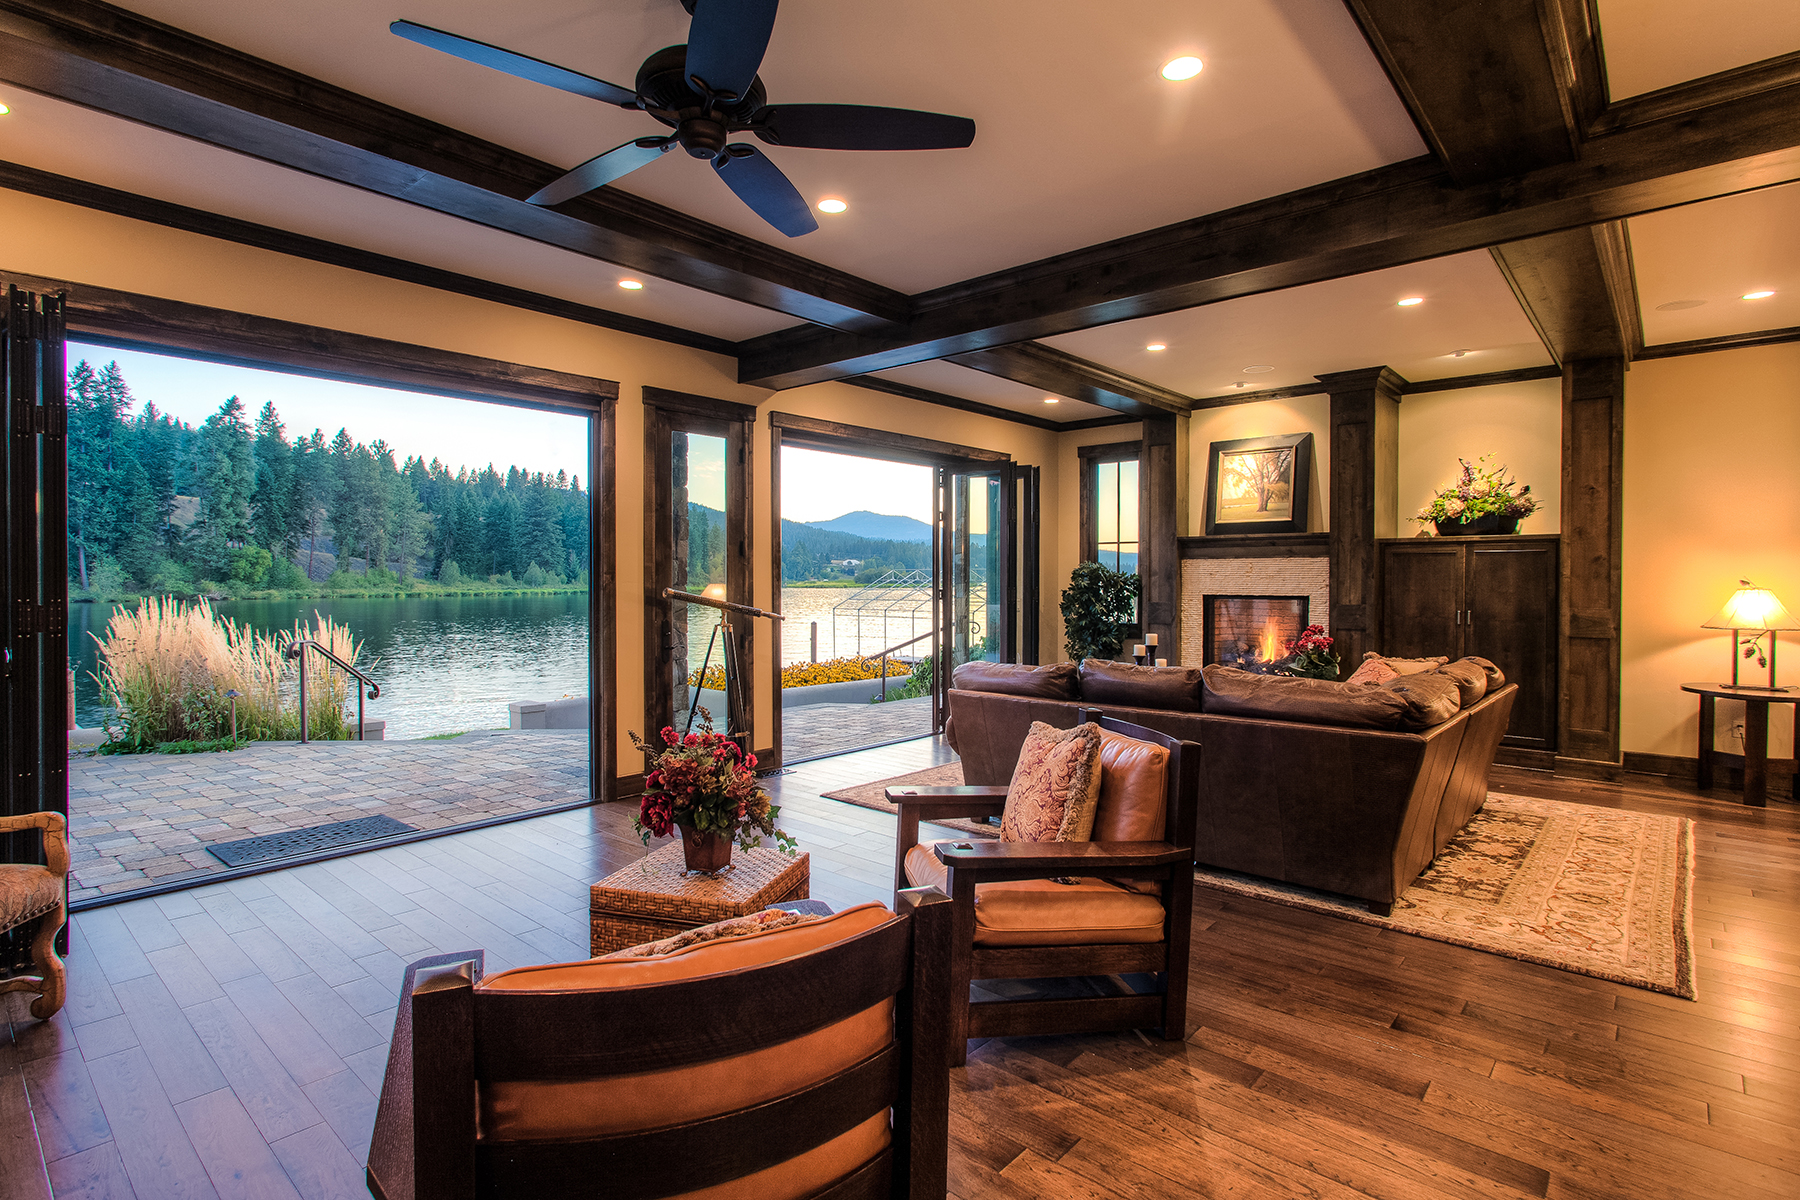 Other Residential for Sale at Luxurious Riverfront Home 3824 W Shoreview Ln Coeur D Alene, Idaho 83814 United States